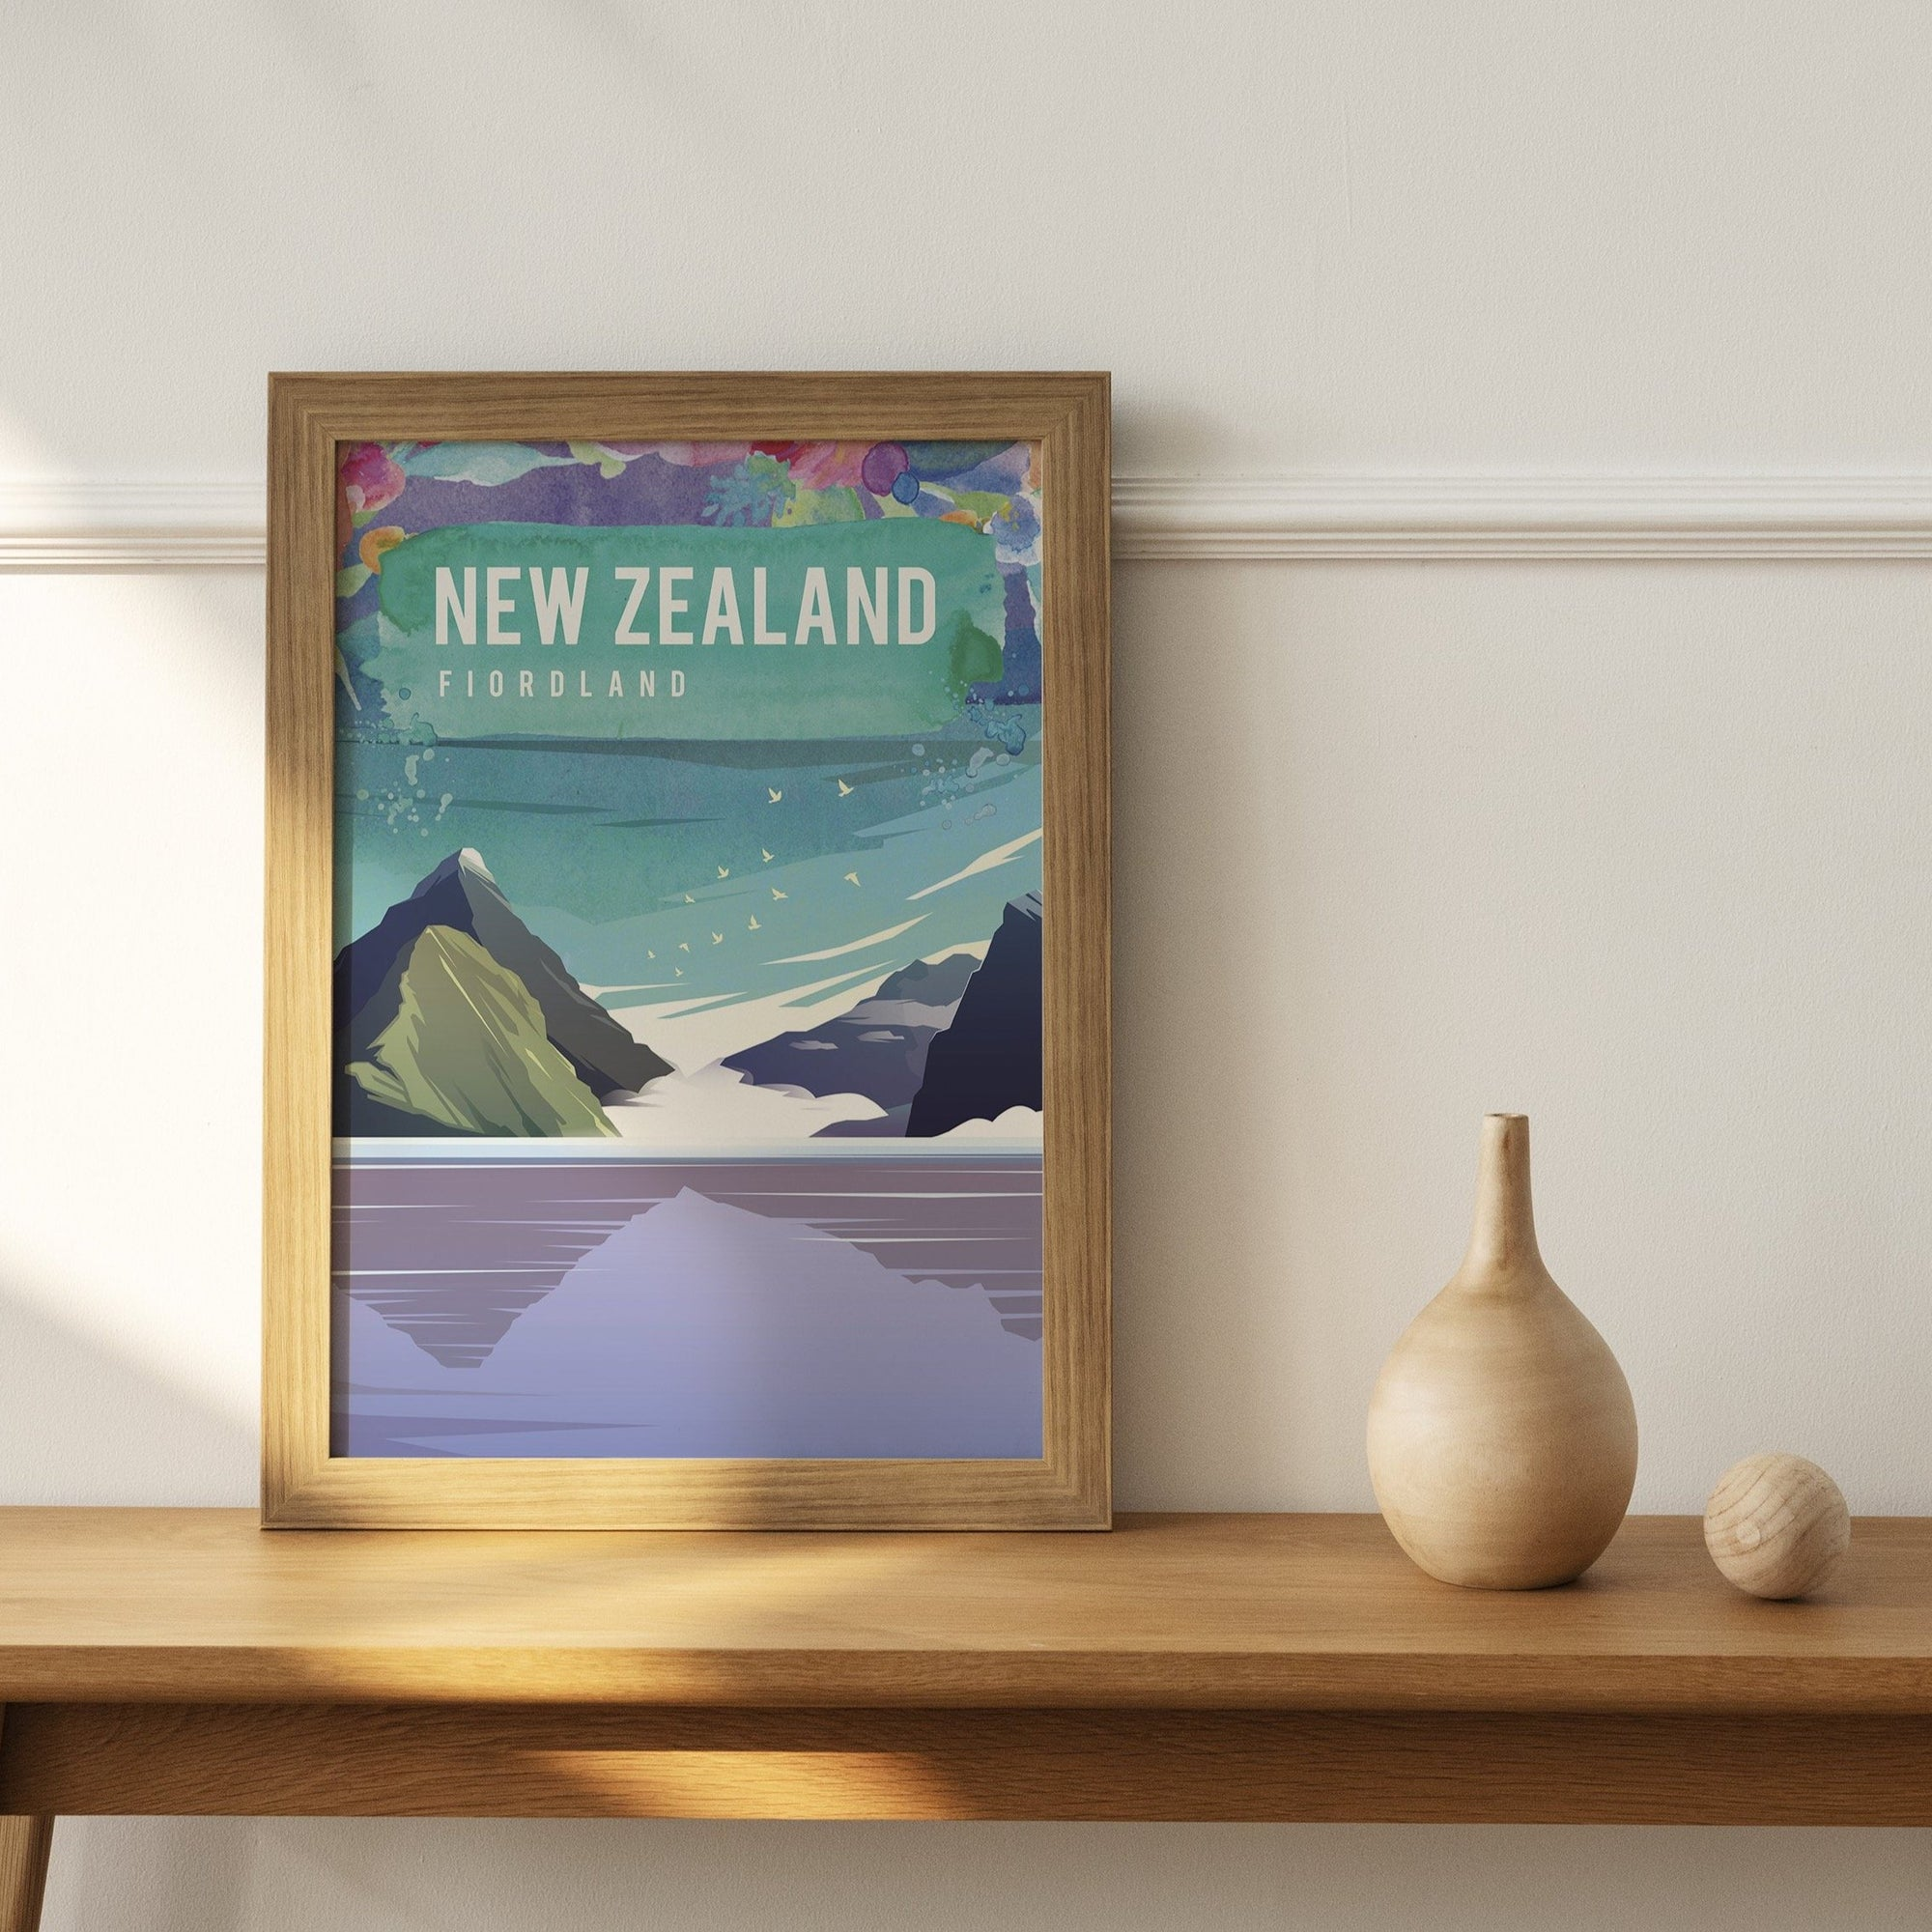 New Zealand, Fiordland fine art travel print